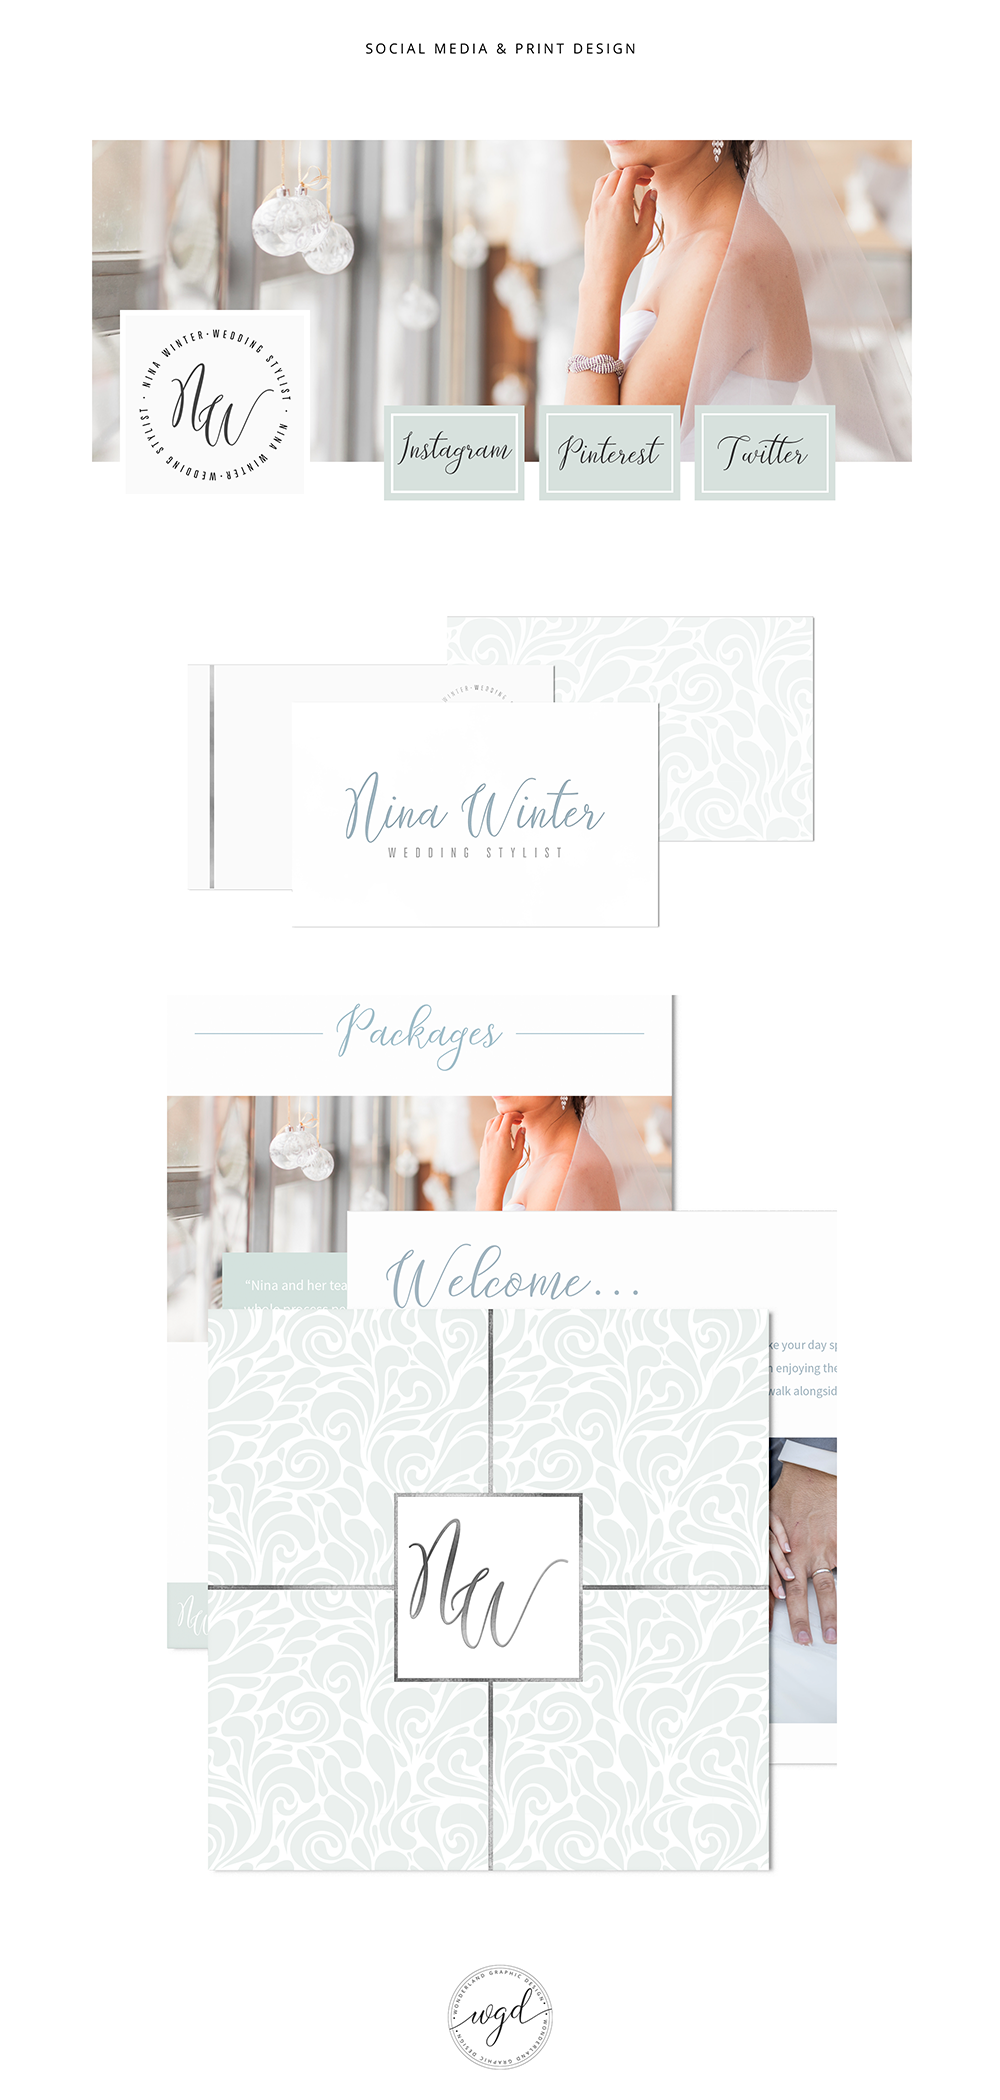 Nina Winter Wedding Stylist - Brand Design and Styling by Wonderland Graphic Design